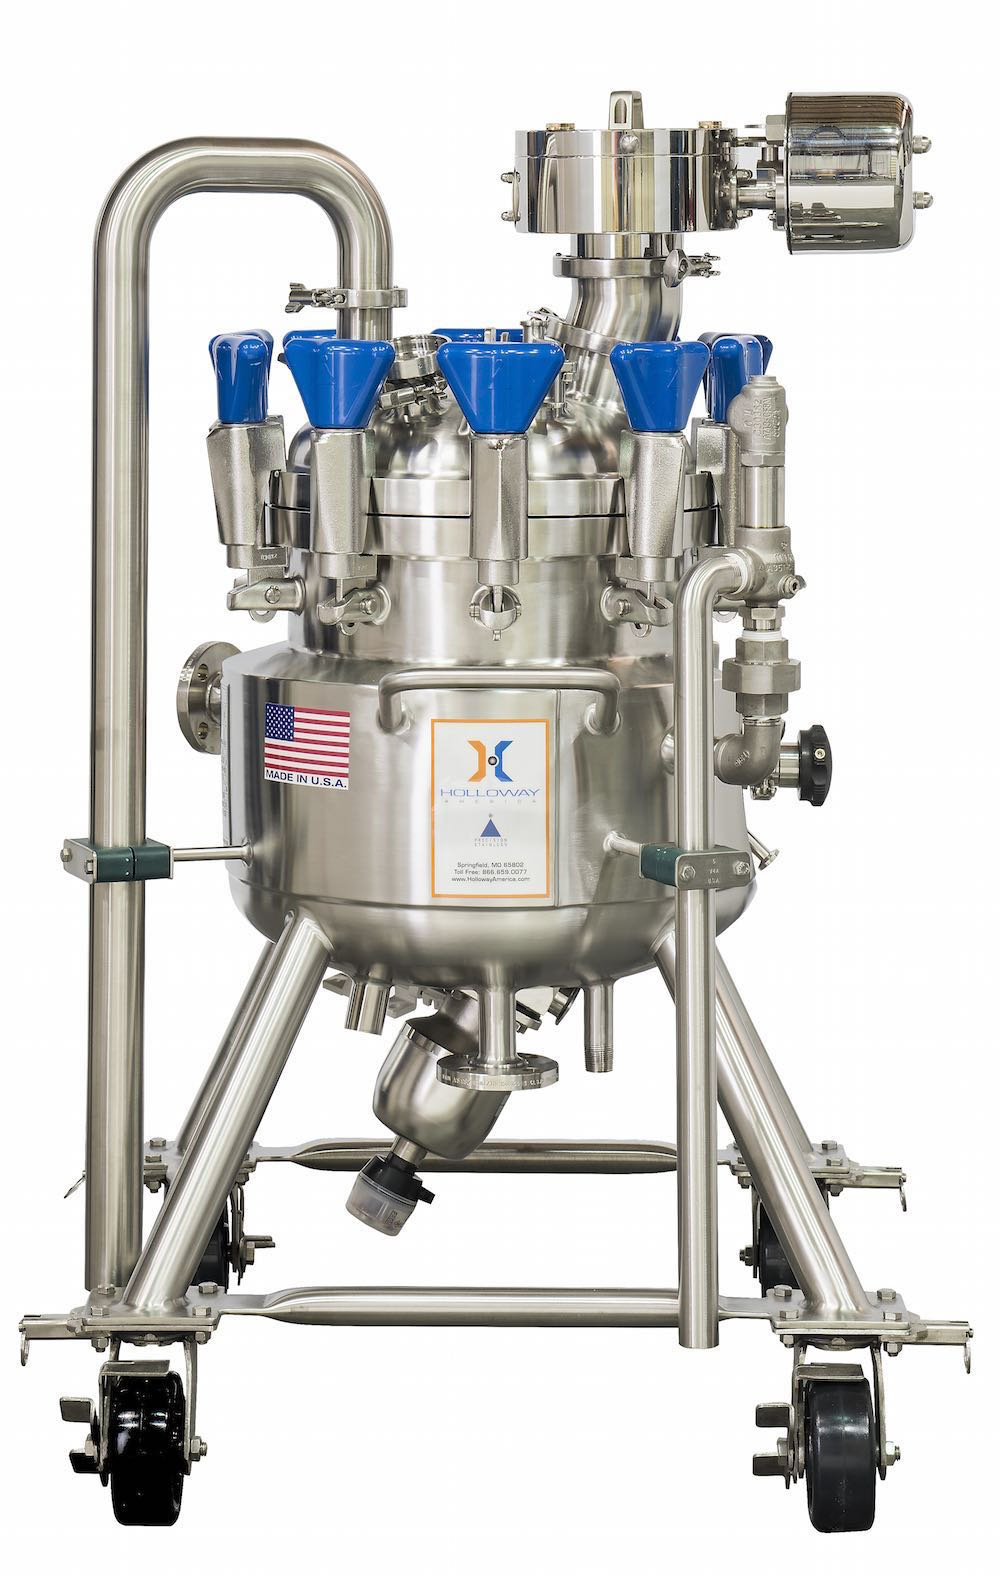 Tested to ASME pressure vessels standards, this ASME mixer tank is built to code.